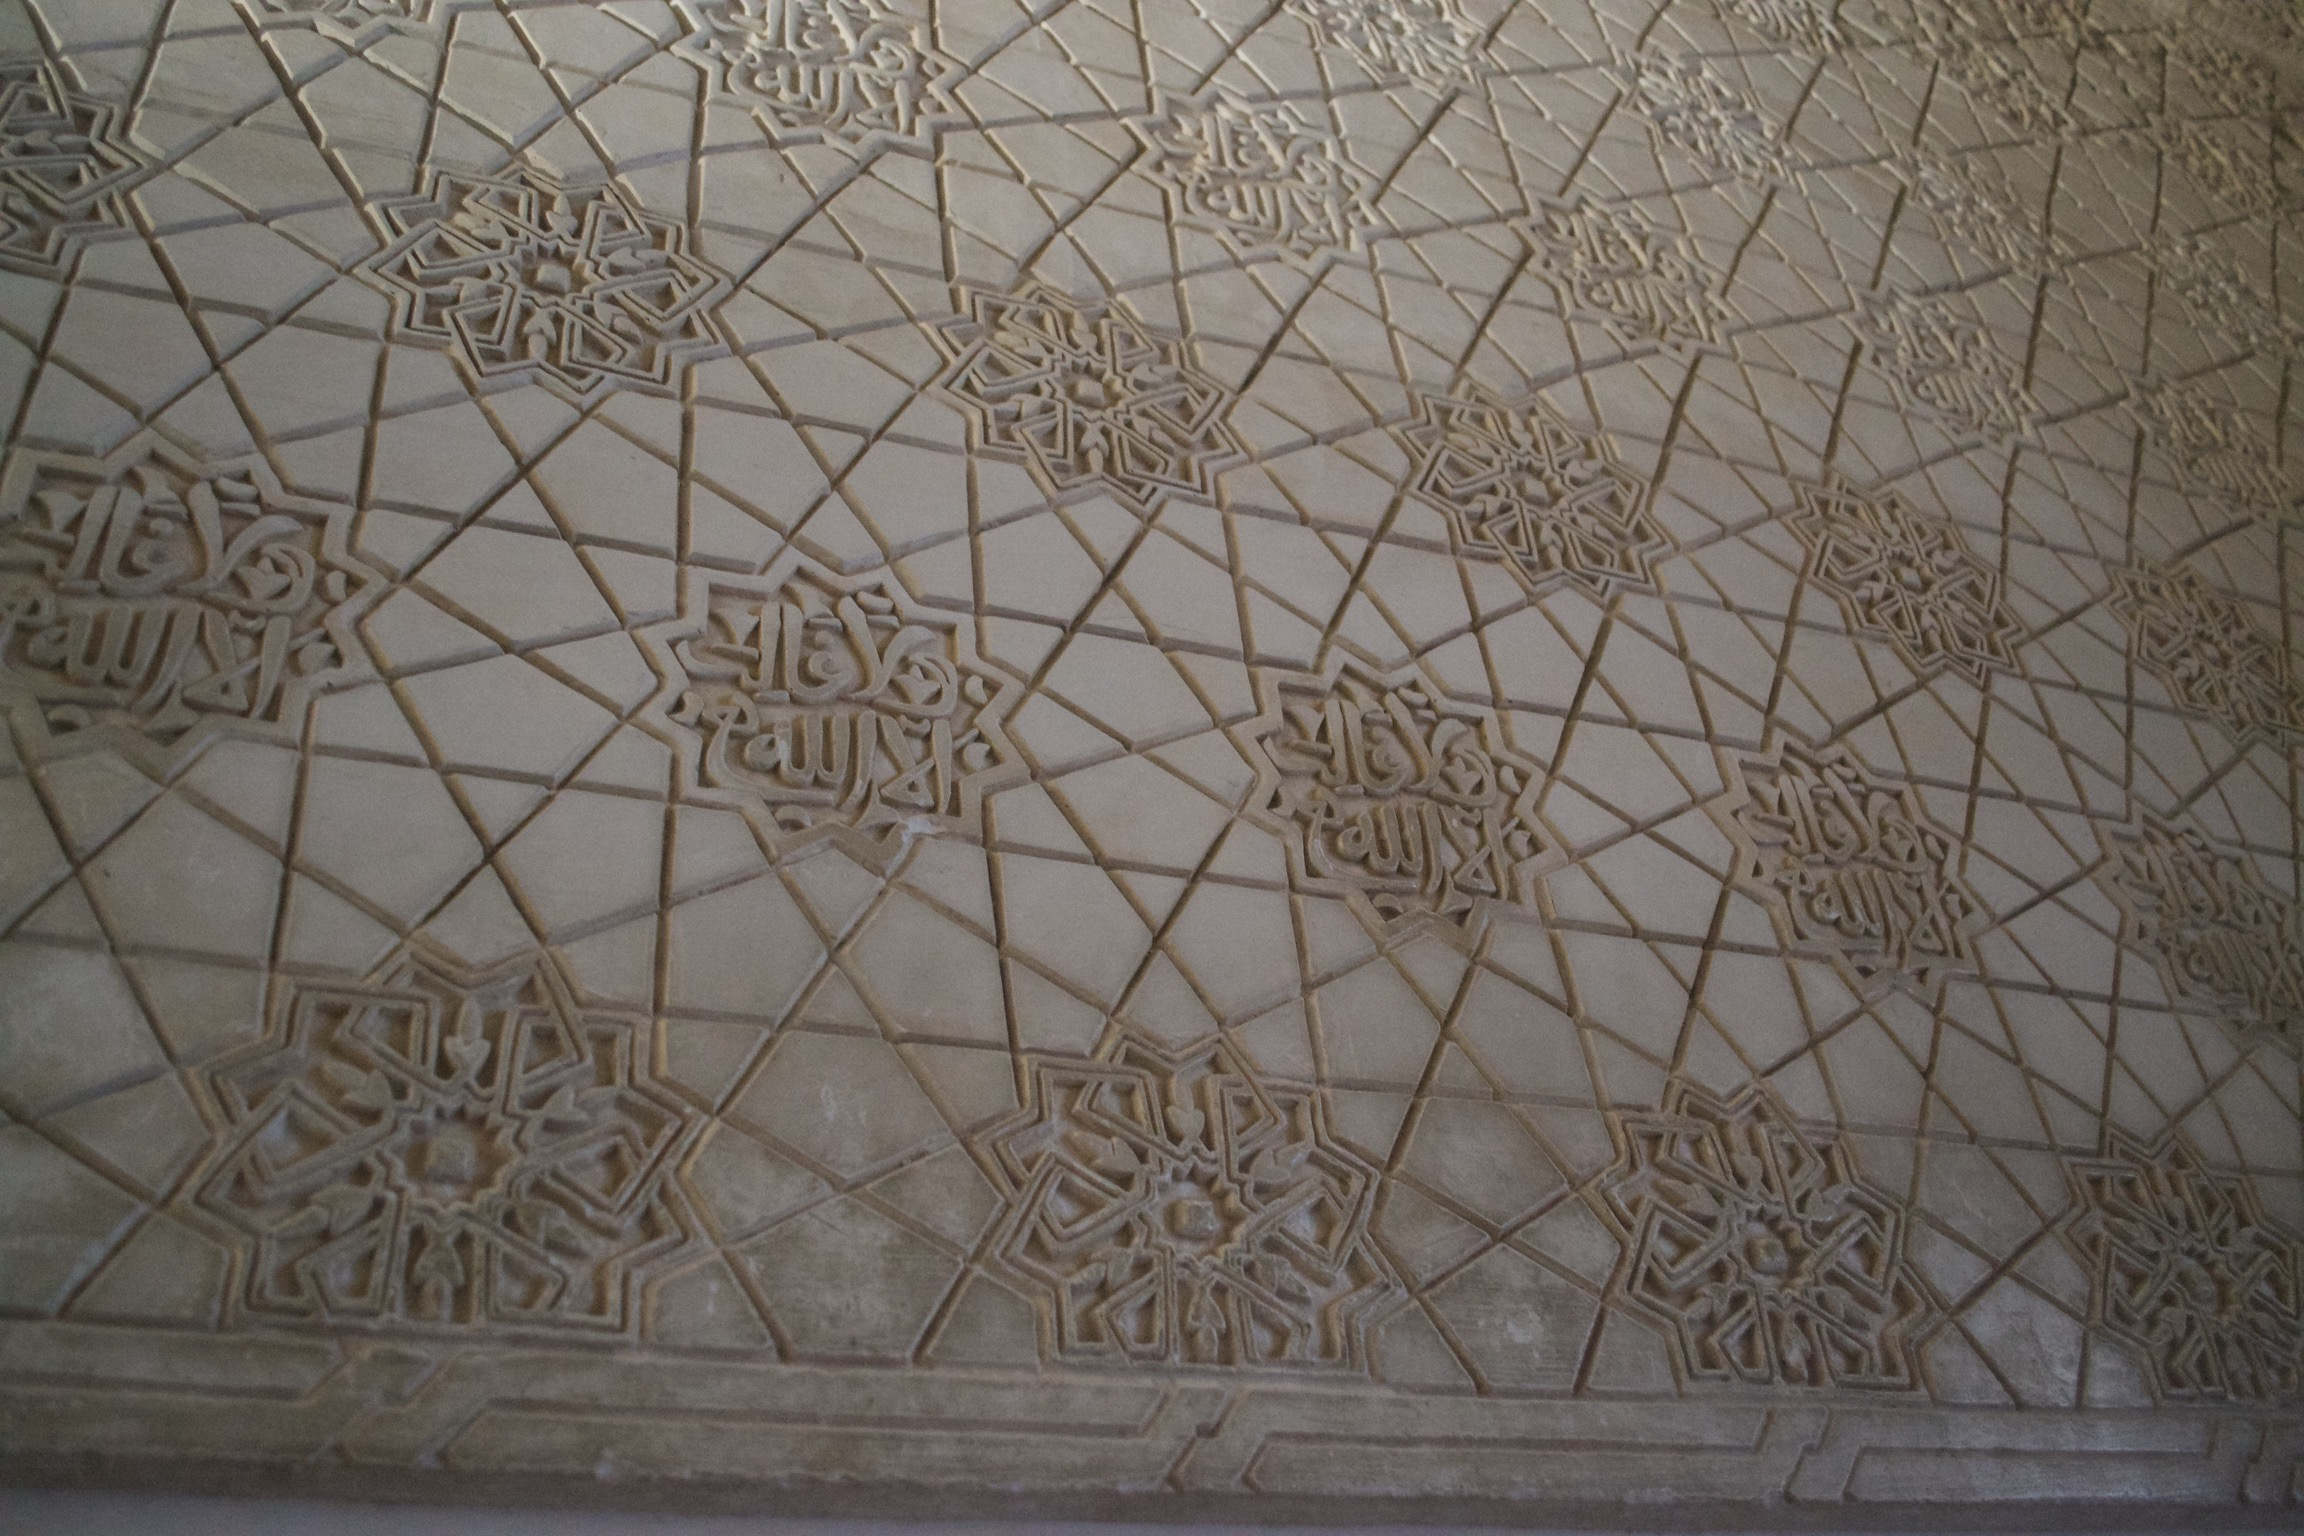 A tesselation of eight-pointed stars and rays emanating from them.  The stars' interiors contain either geometric designs or Arabic inscriptions.